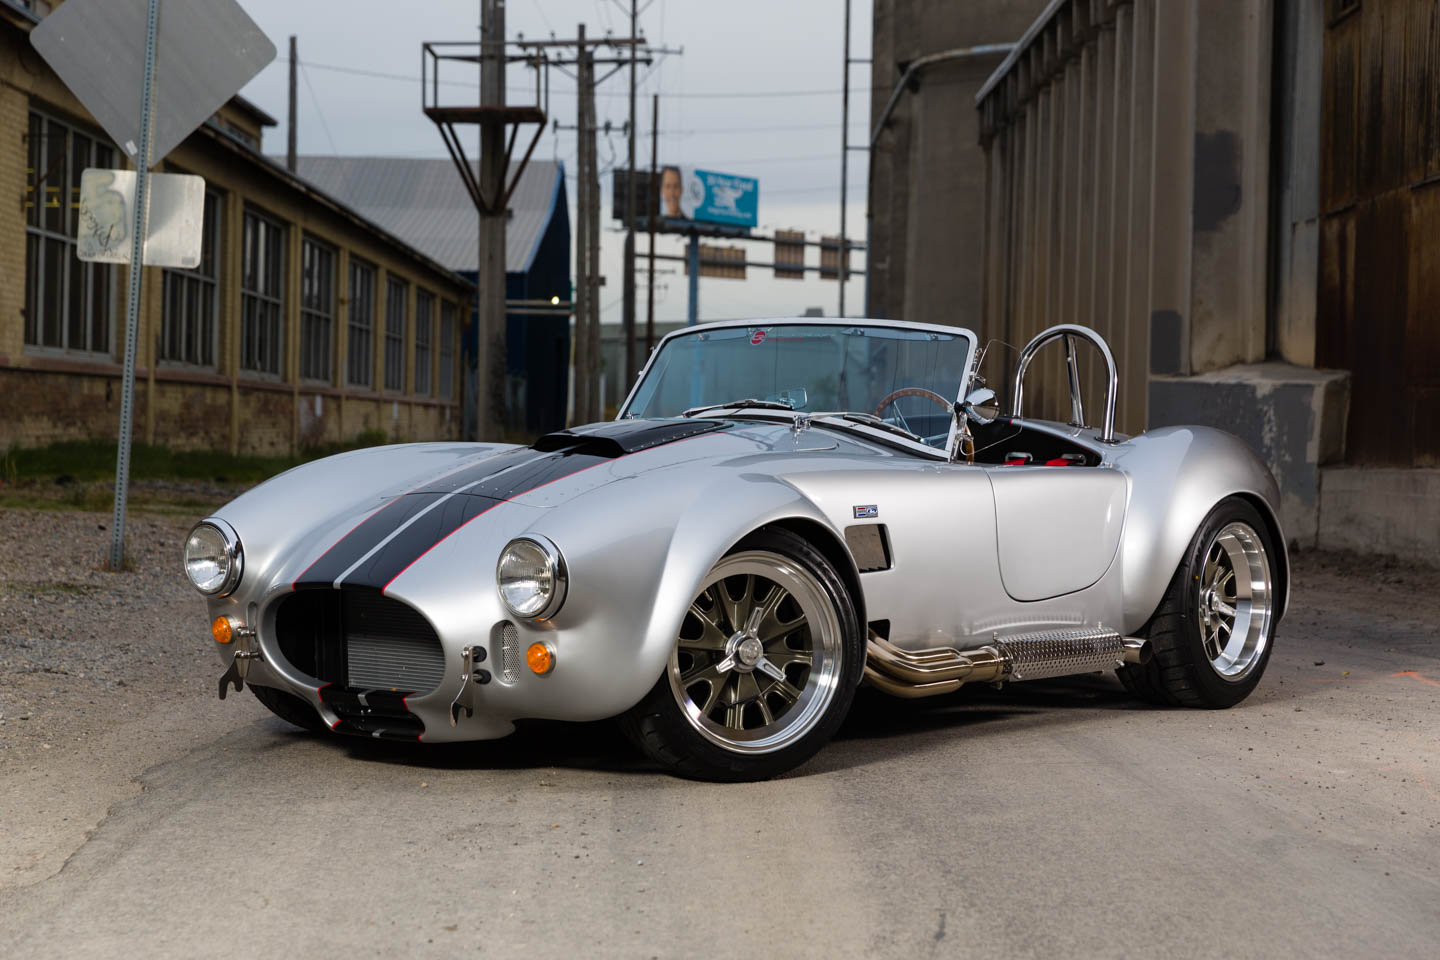 Silver Shelby Cobra replica based on the 1965 model